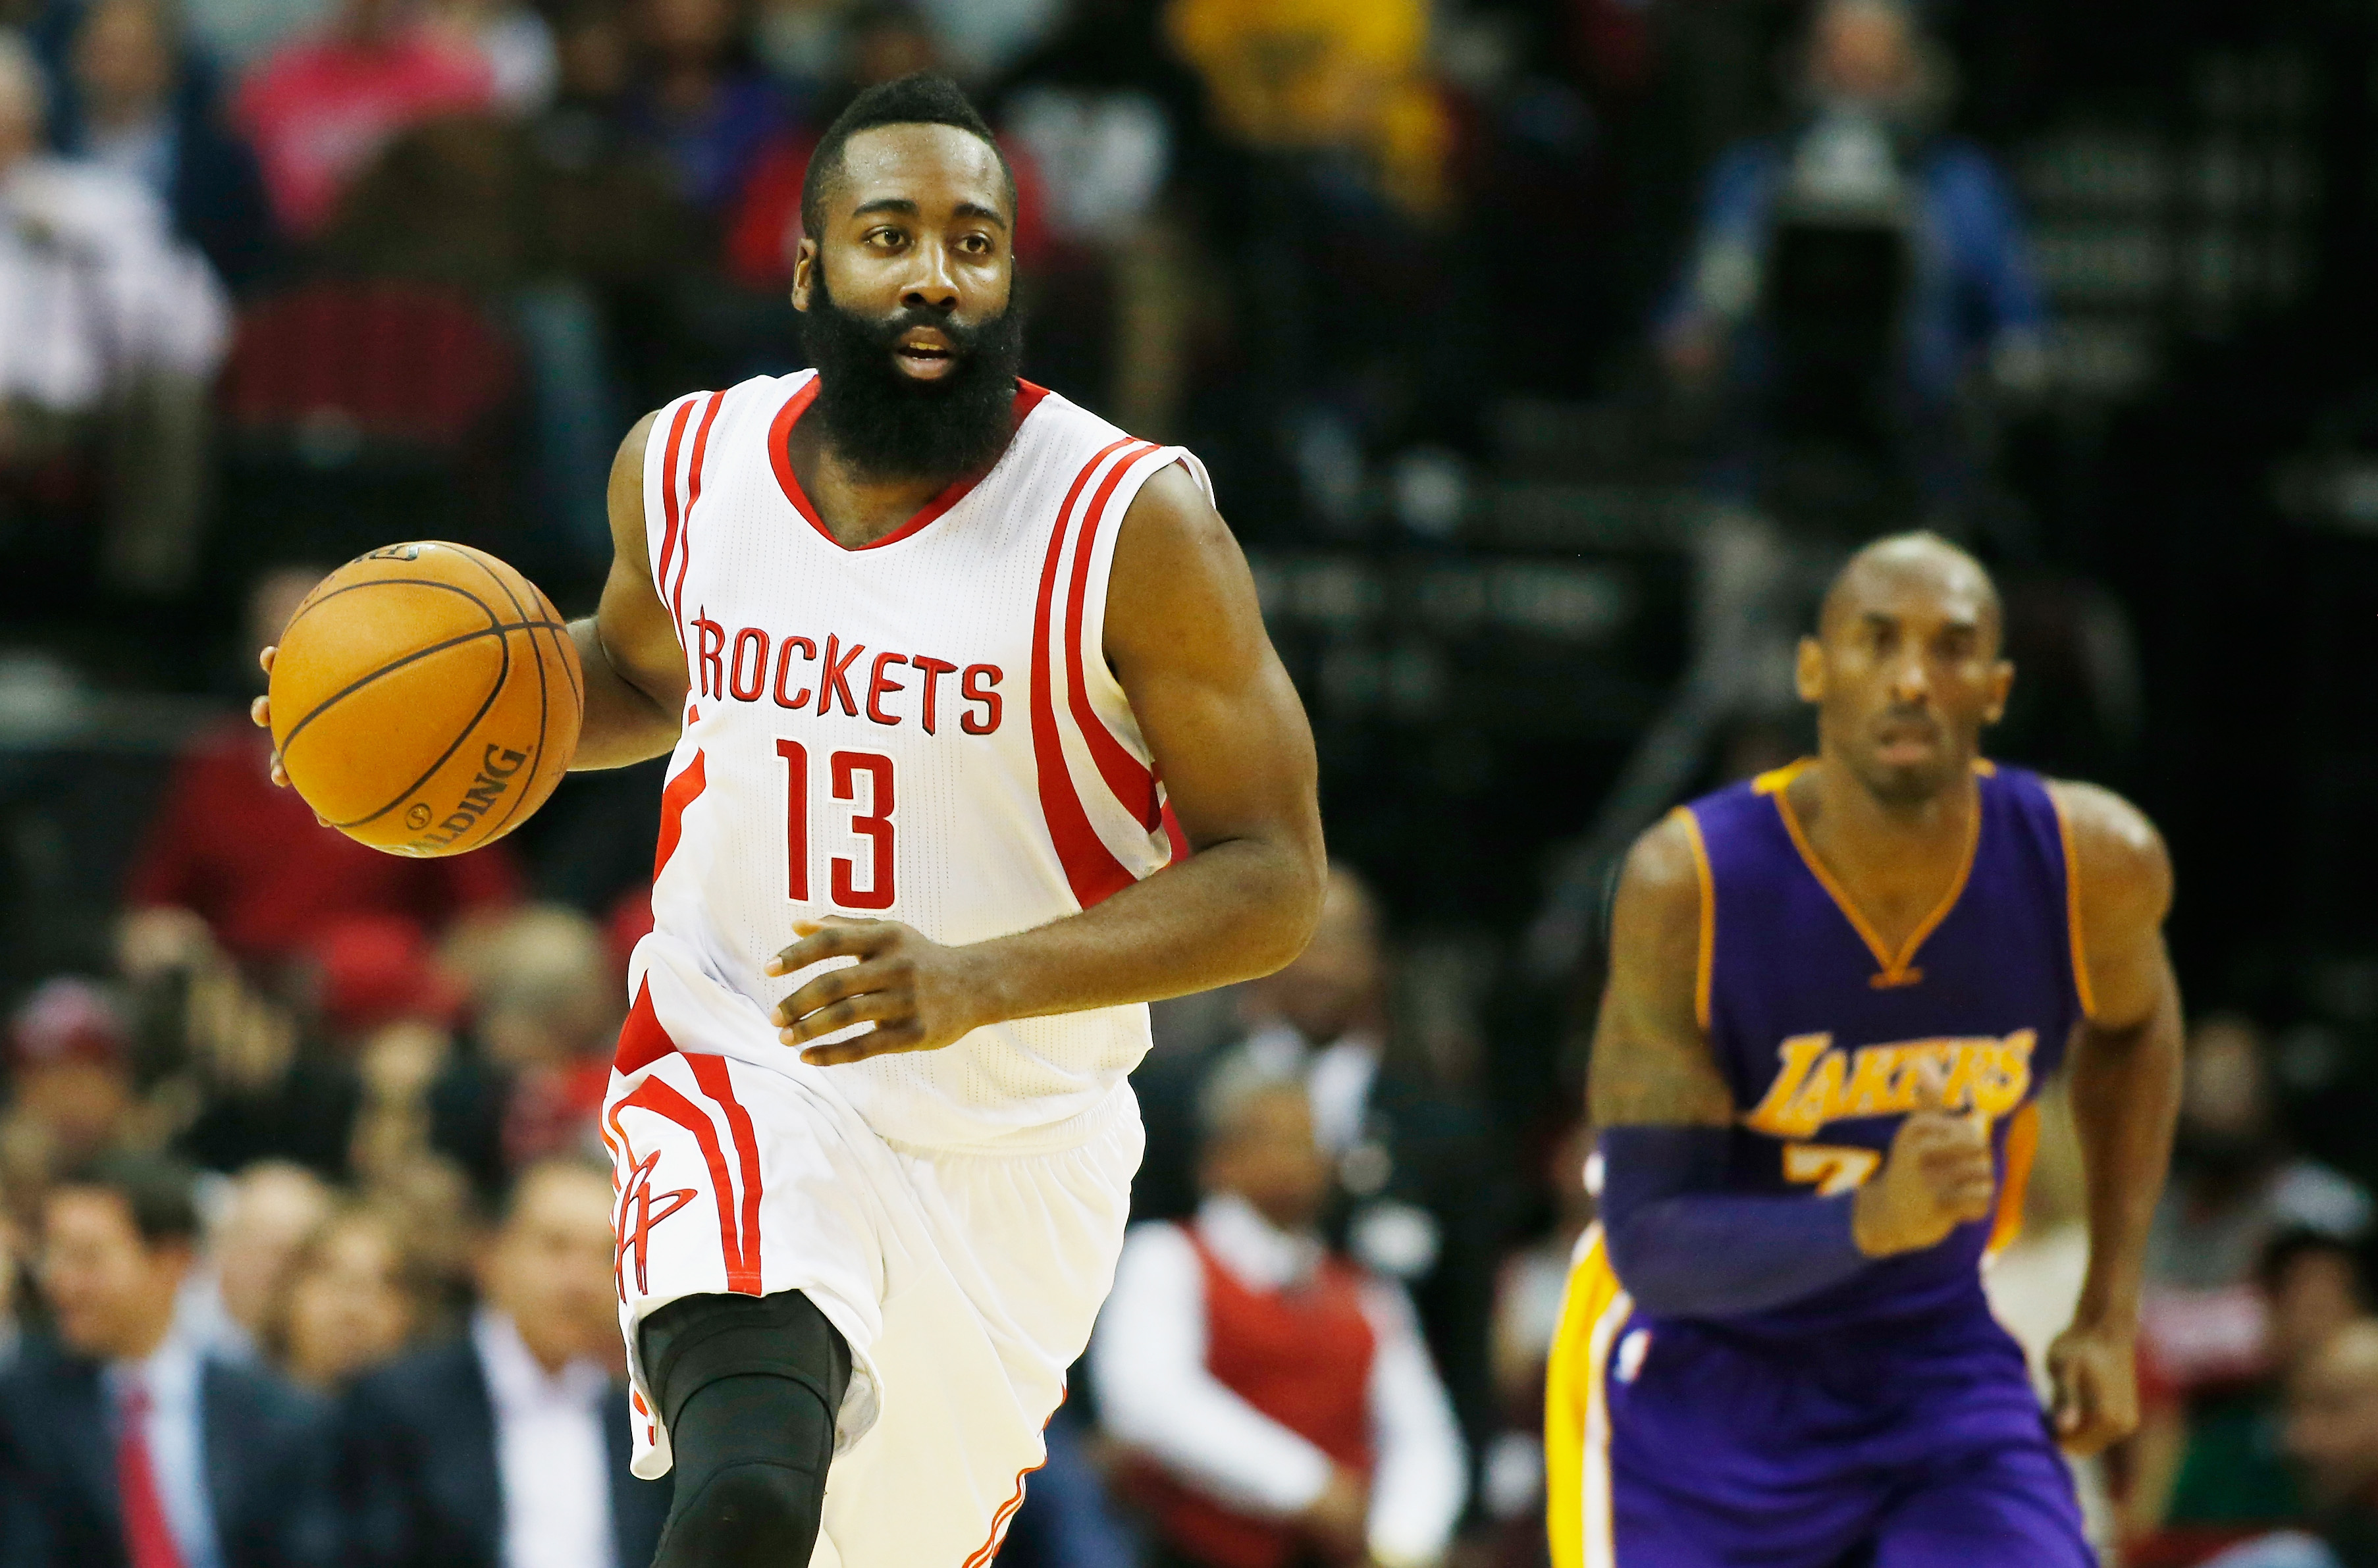 James Harden (L) is in the running to take the injured Kobe Bryant's (R) starting spot in the 2015 NBA All-Star Game.